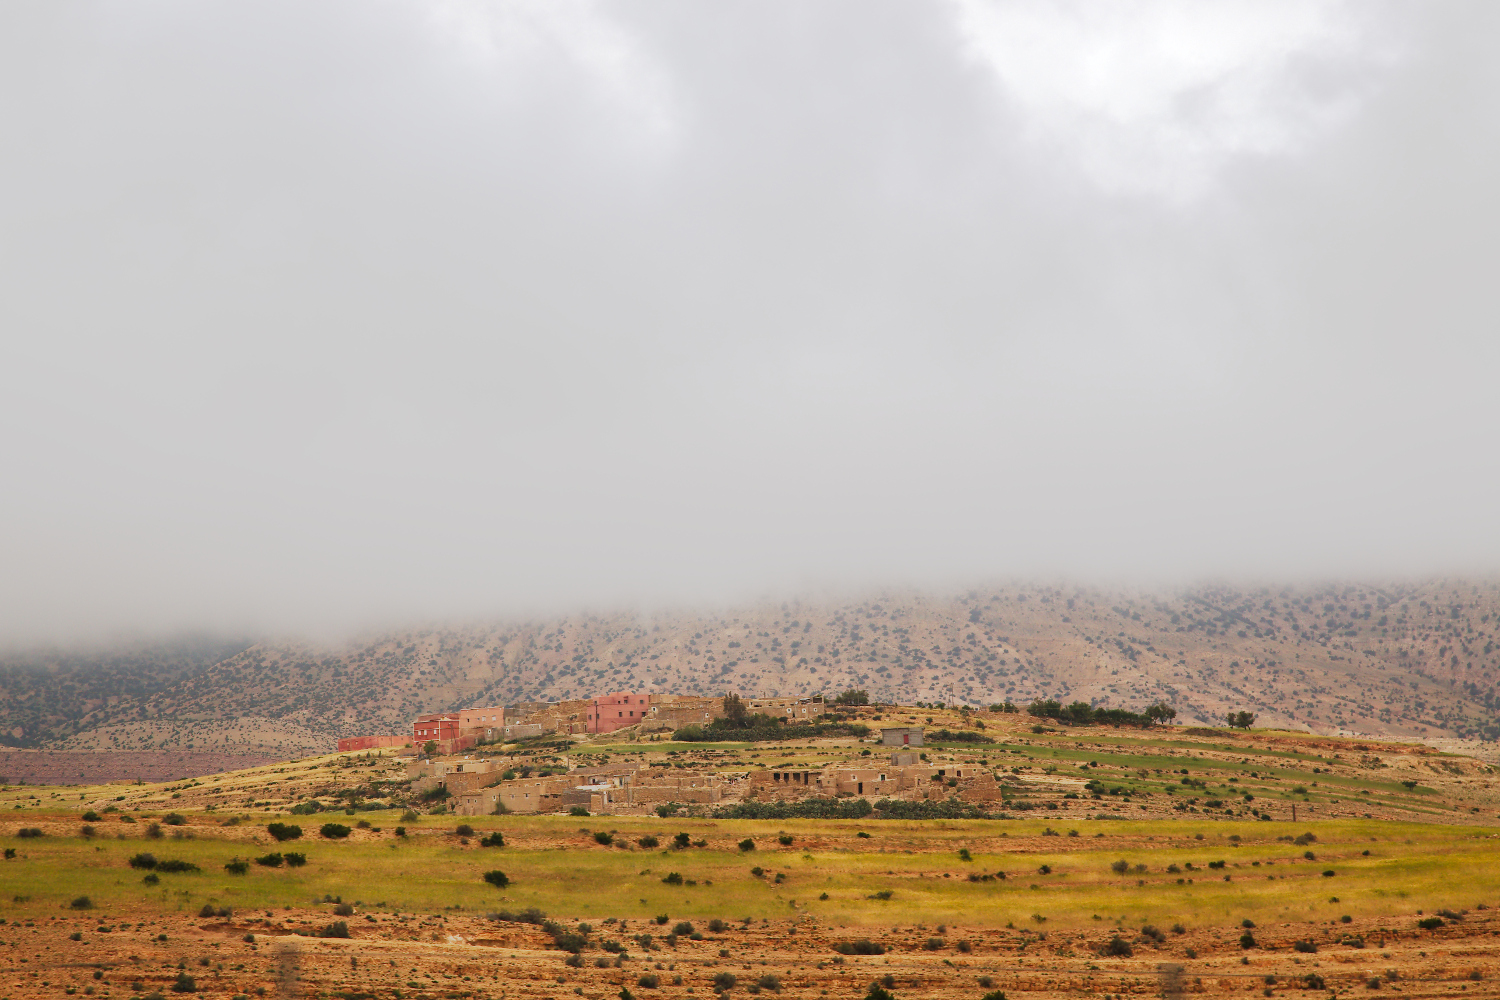 A mountain landscape in Morocco. Tips for Taking Better Pictures from a Moving Vehicle